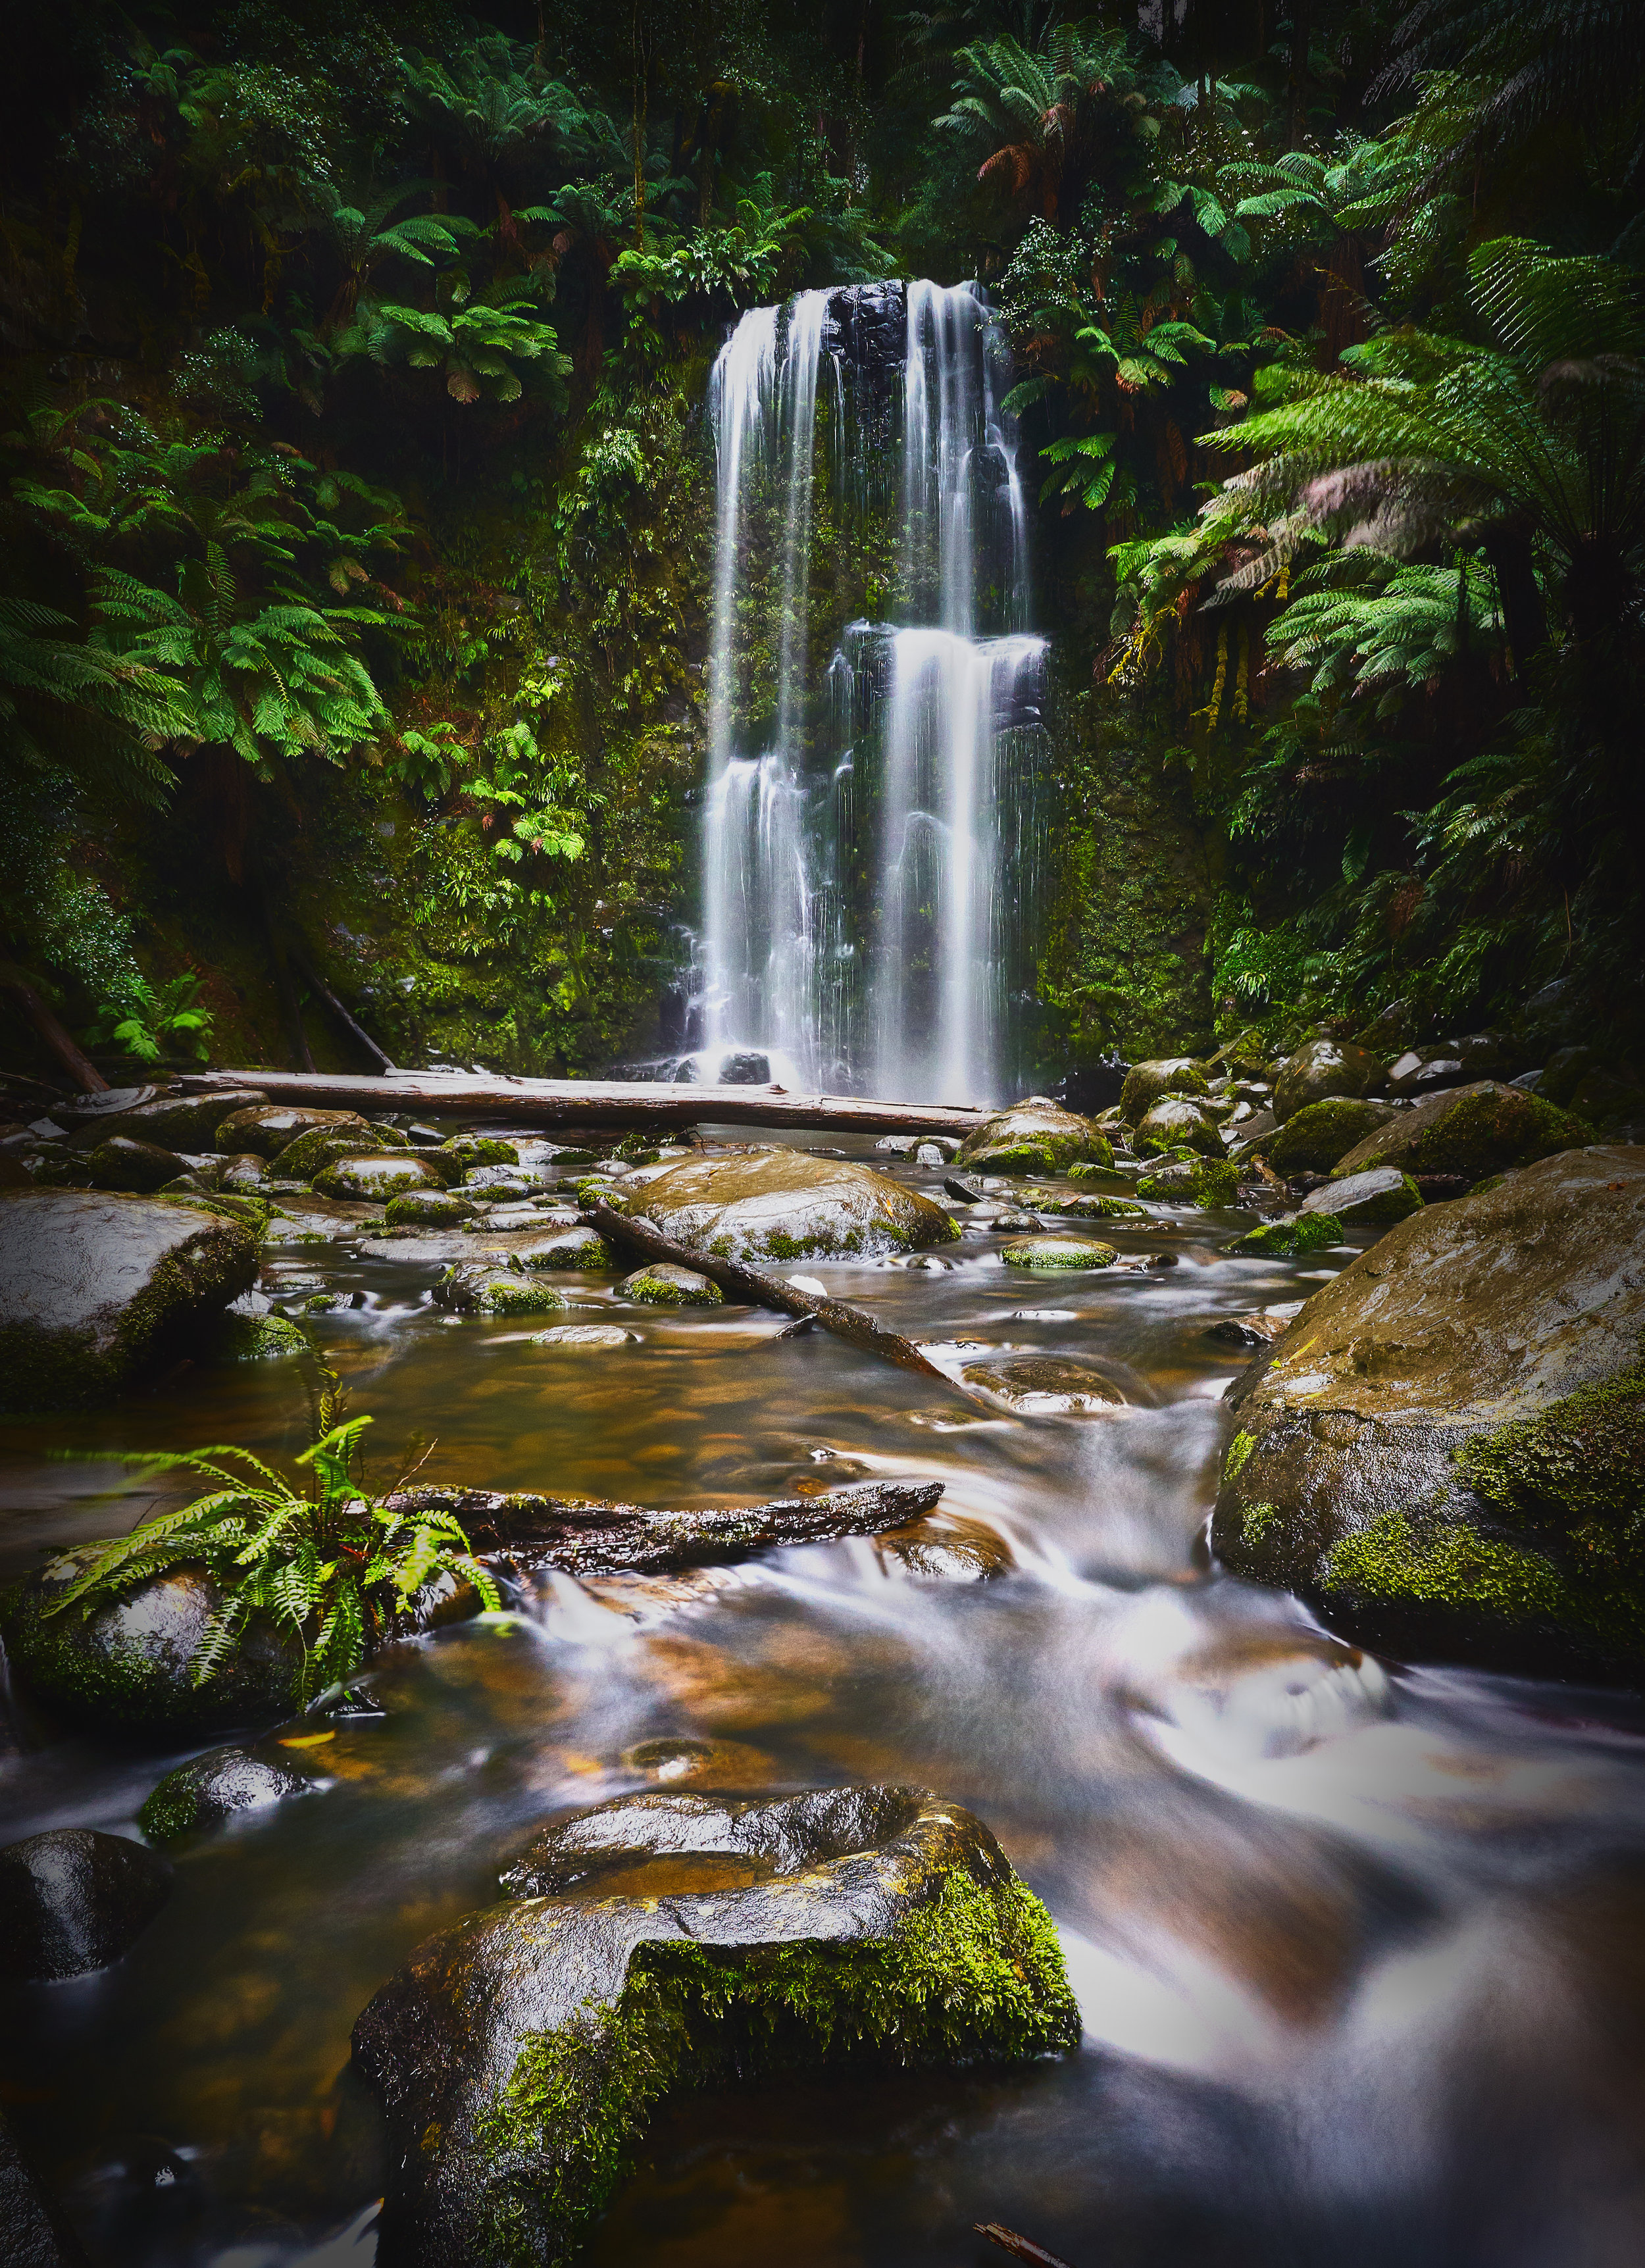 Beauchamp Falls | Standing in the river to take this shot, feeling the cold spray from the falls and immersed in the sounds of the water crashing on rocks at the bottom of a deep valley of ferns and tall gum trees made me feel connected to life.